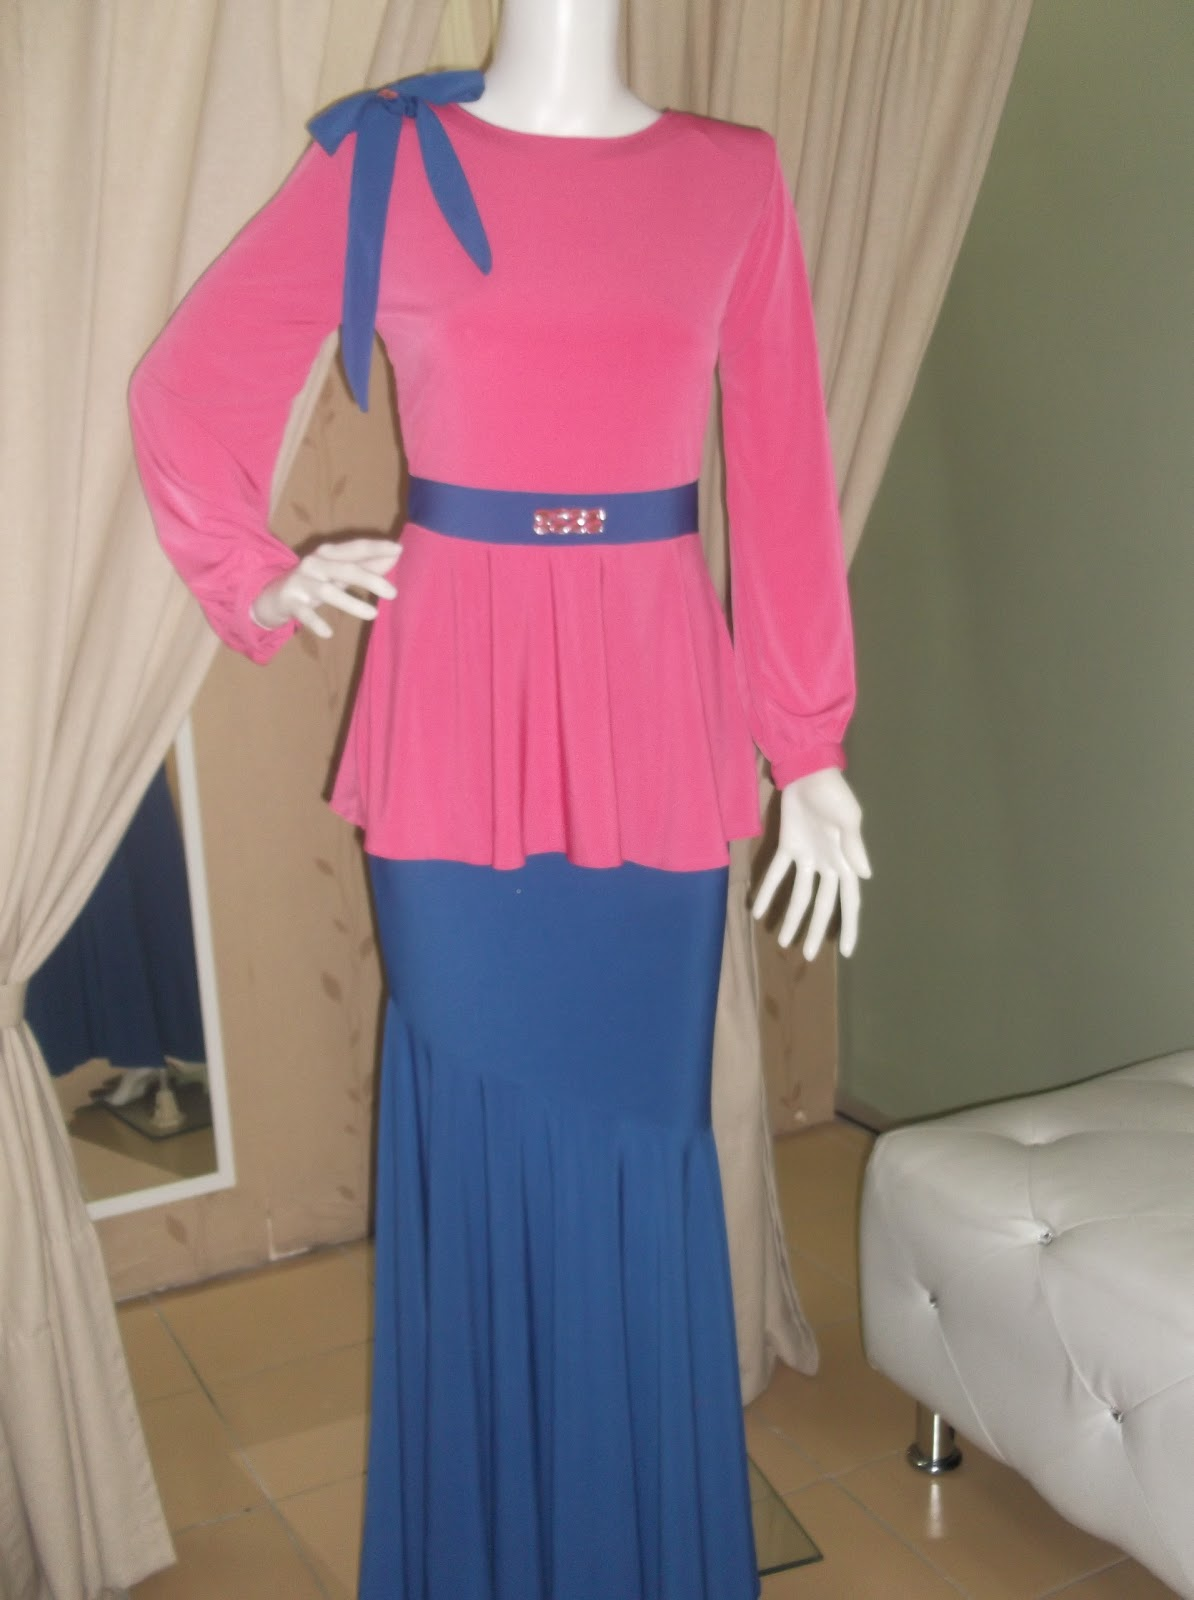 Trendy boutique clothing for women